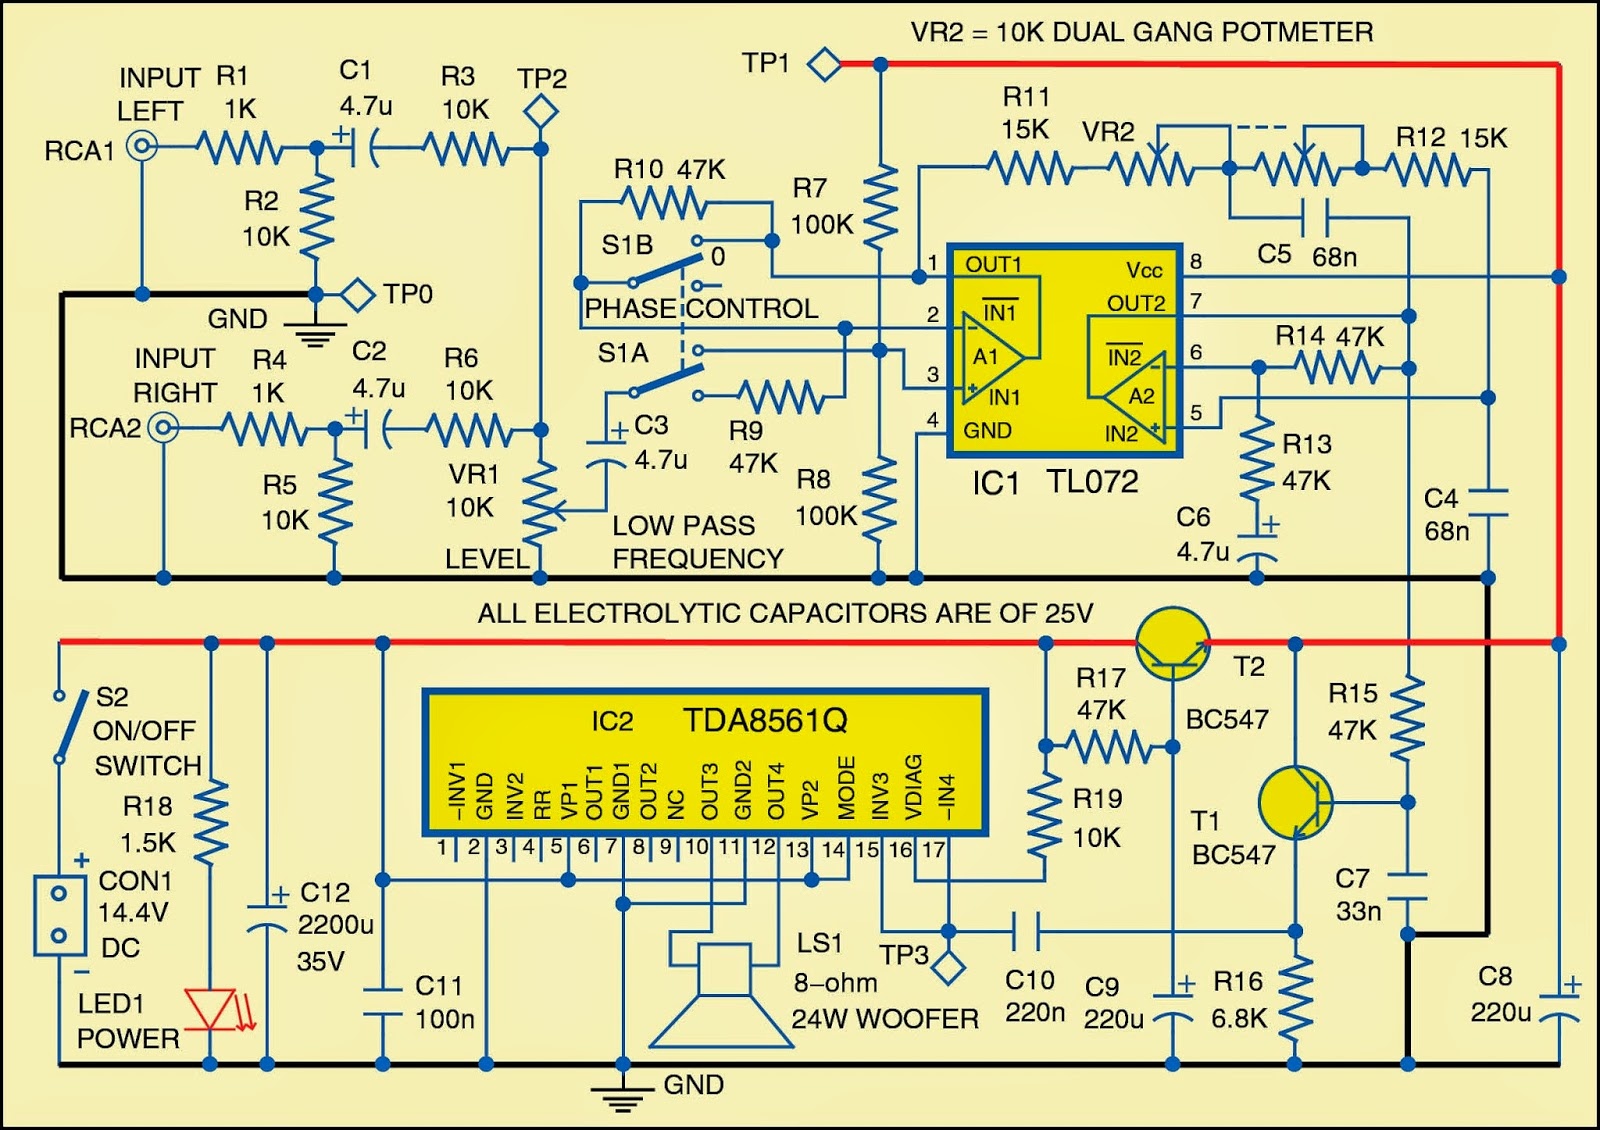 Car Subwoofer And Wiring Diagram Worksheet Bridge For Cars Circuit Electronic Circuits Rh Streampowers Blogspot Com Wattage